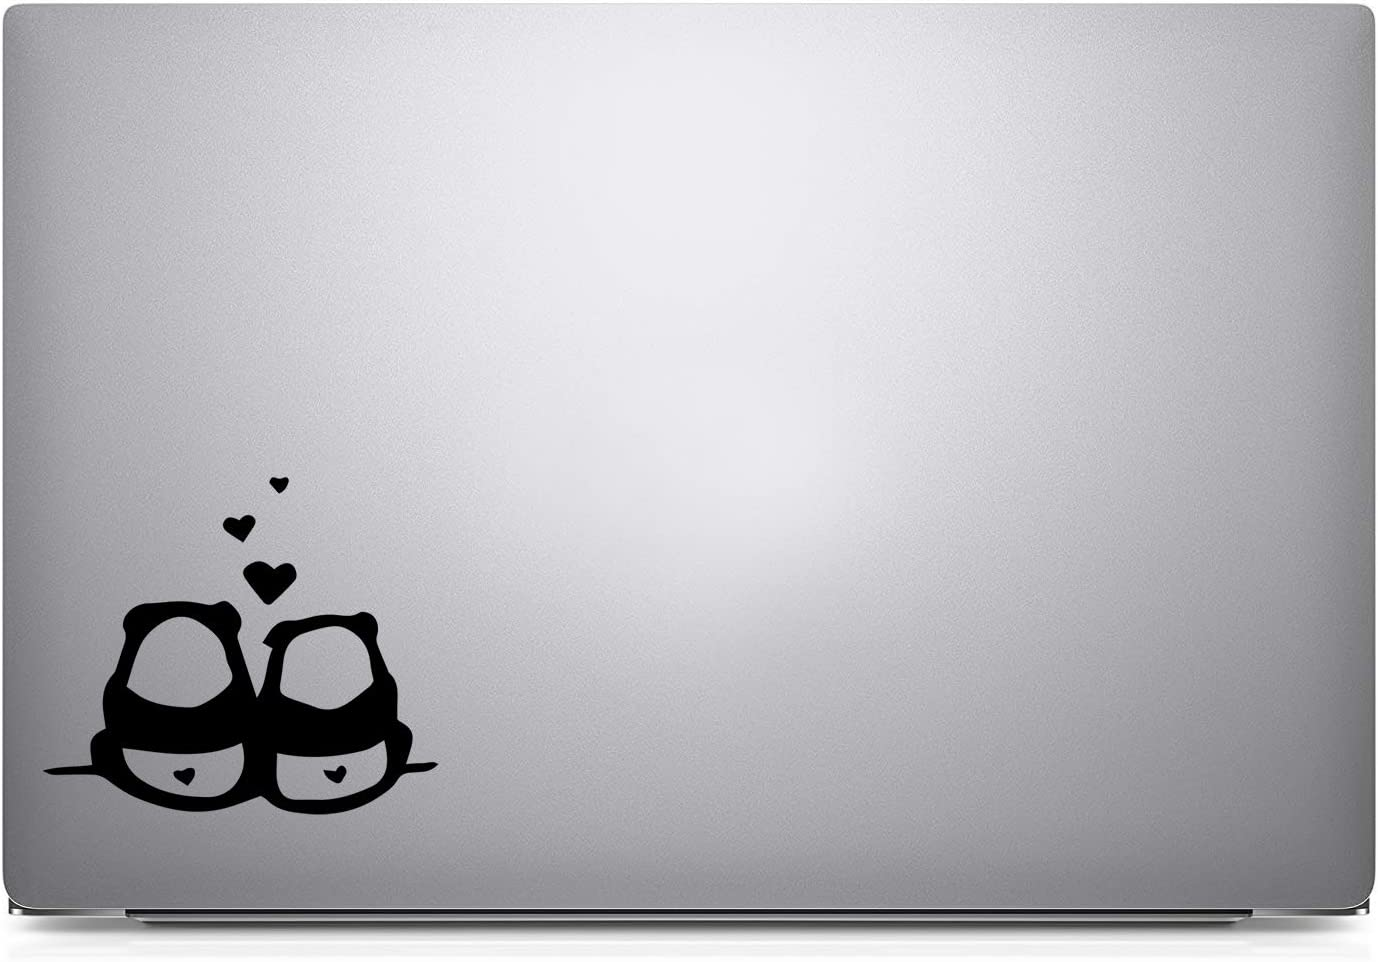 Bargain Max Decals Two Pandas in Love Decal Sticker